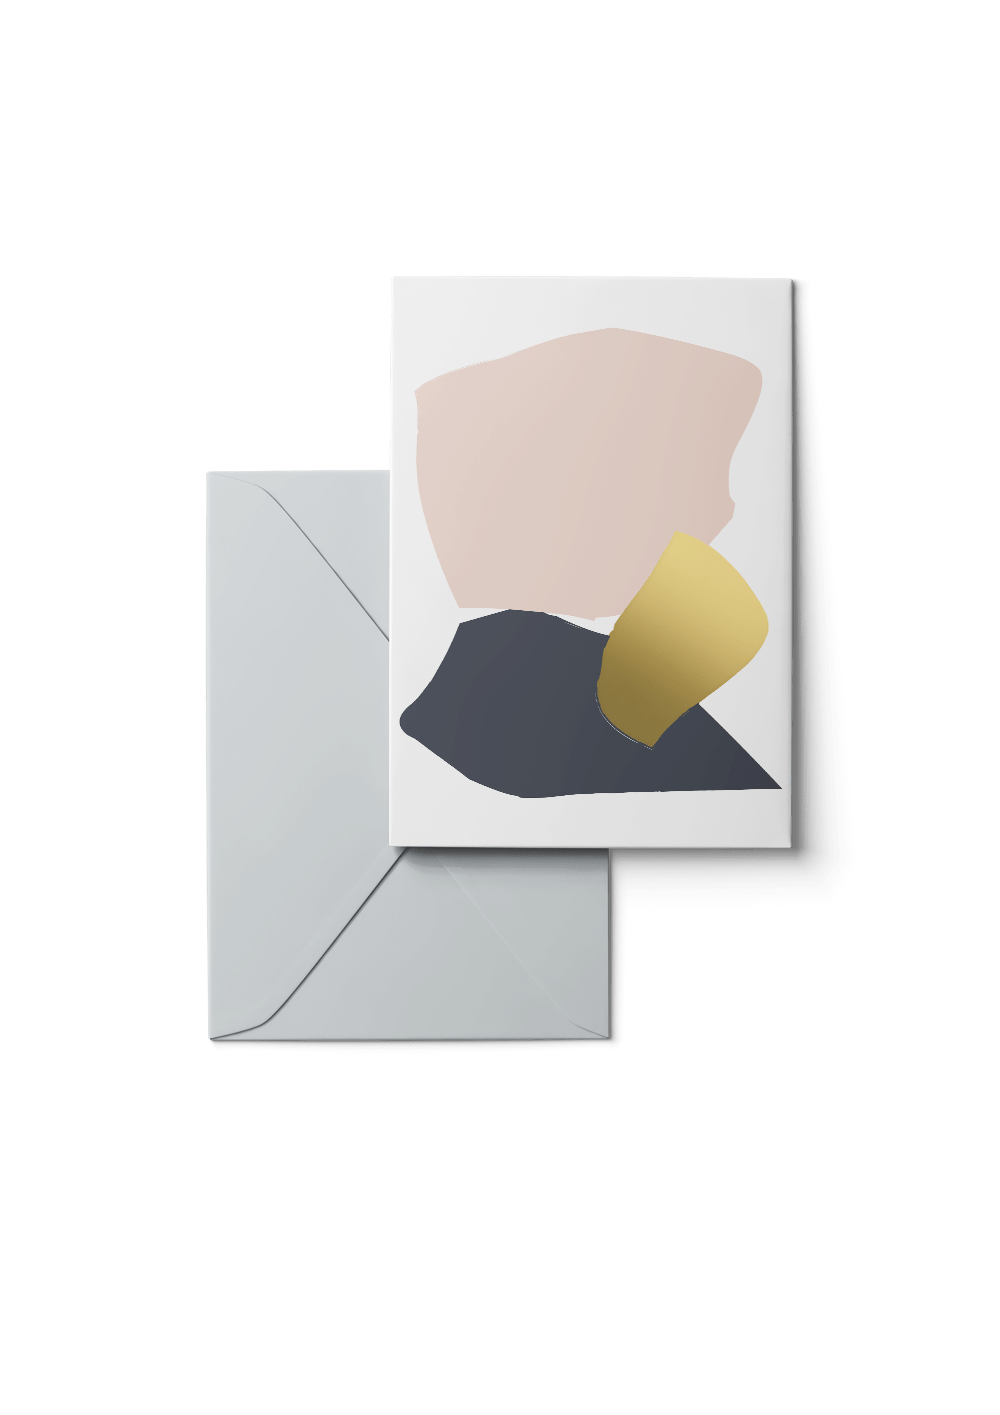 Yosemite, Gold Foil, 6 Karten Set by Karten Design Fabrik. Supplier of designer Greeting Cards, Gift Wrap, Christmas Cards & Invitations to leading design stores including Connox, Modulor, Magazin & Manufactum.